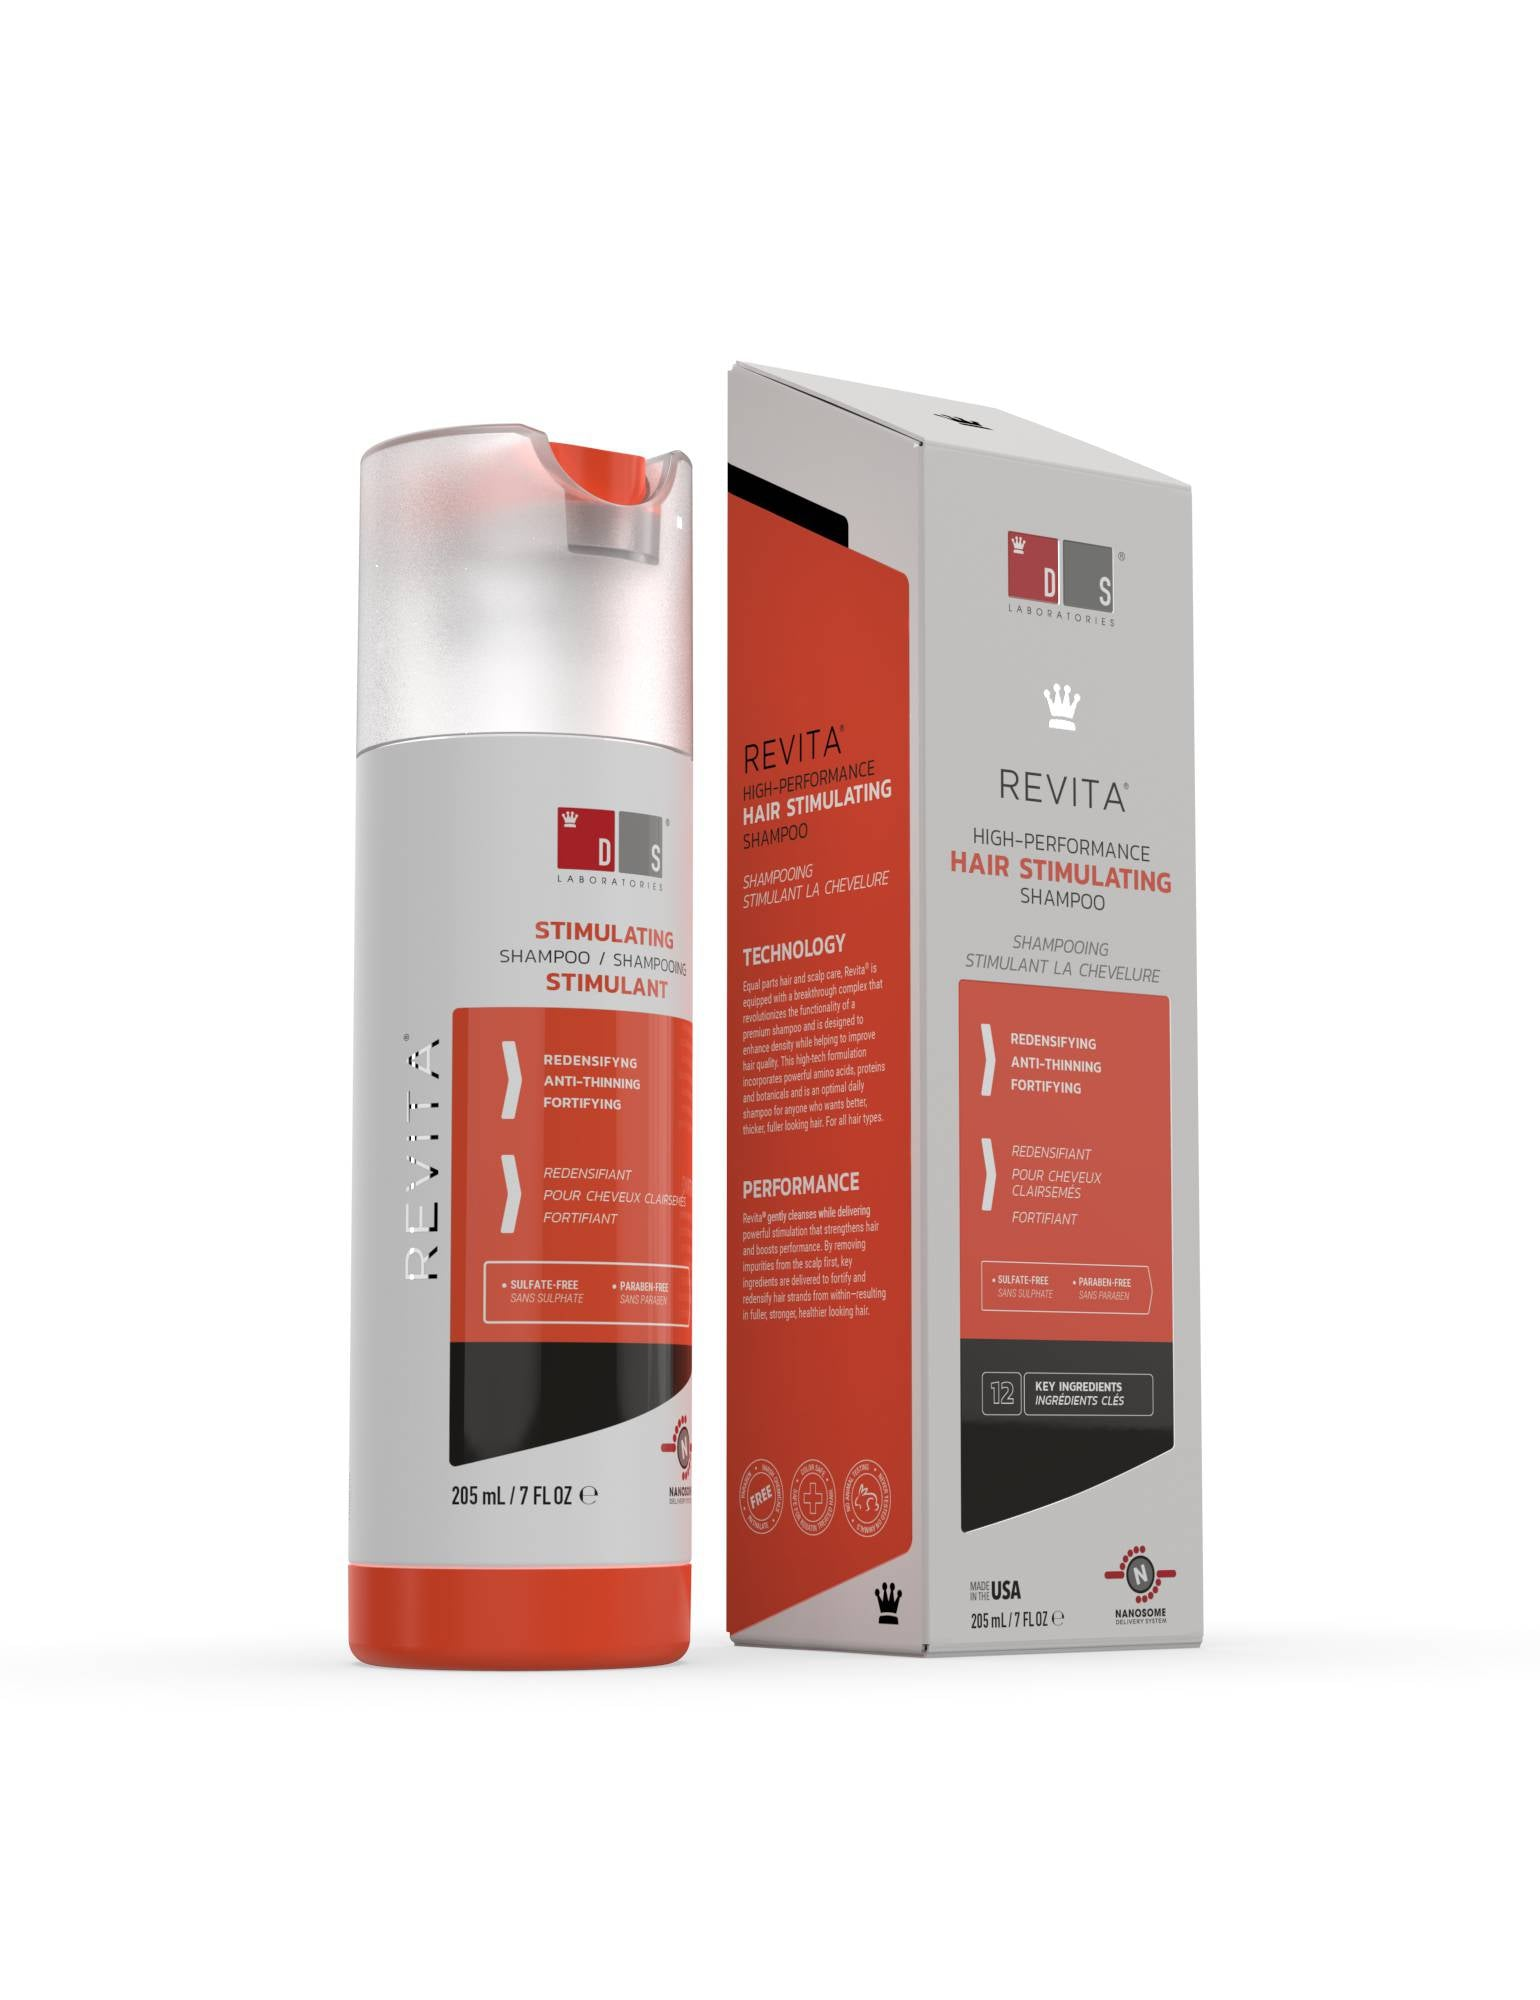 Revita | High-Performance Hair Stimulating Shampoo test